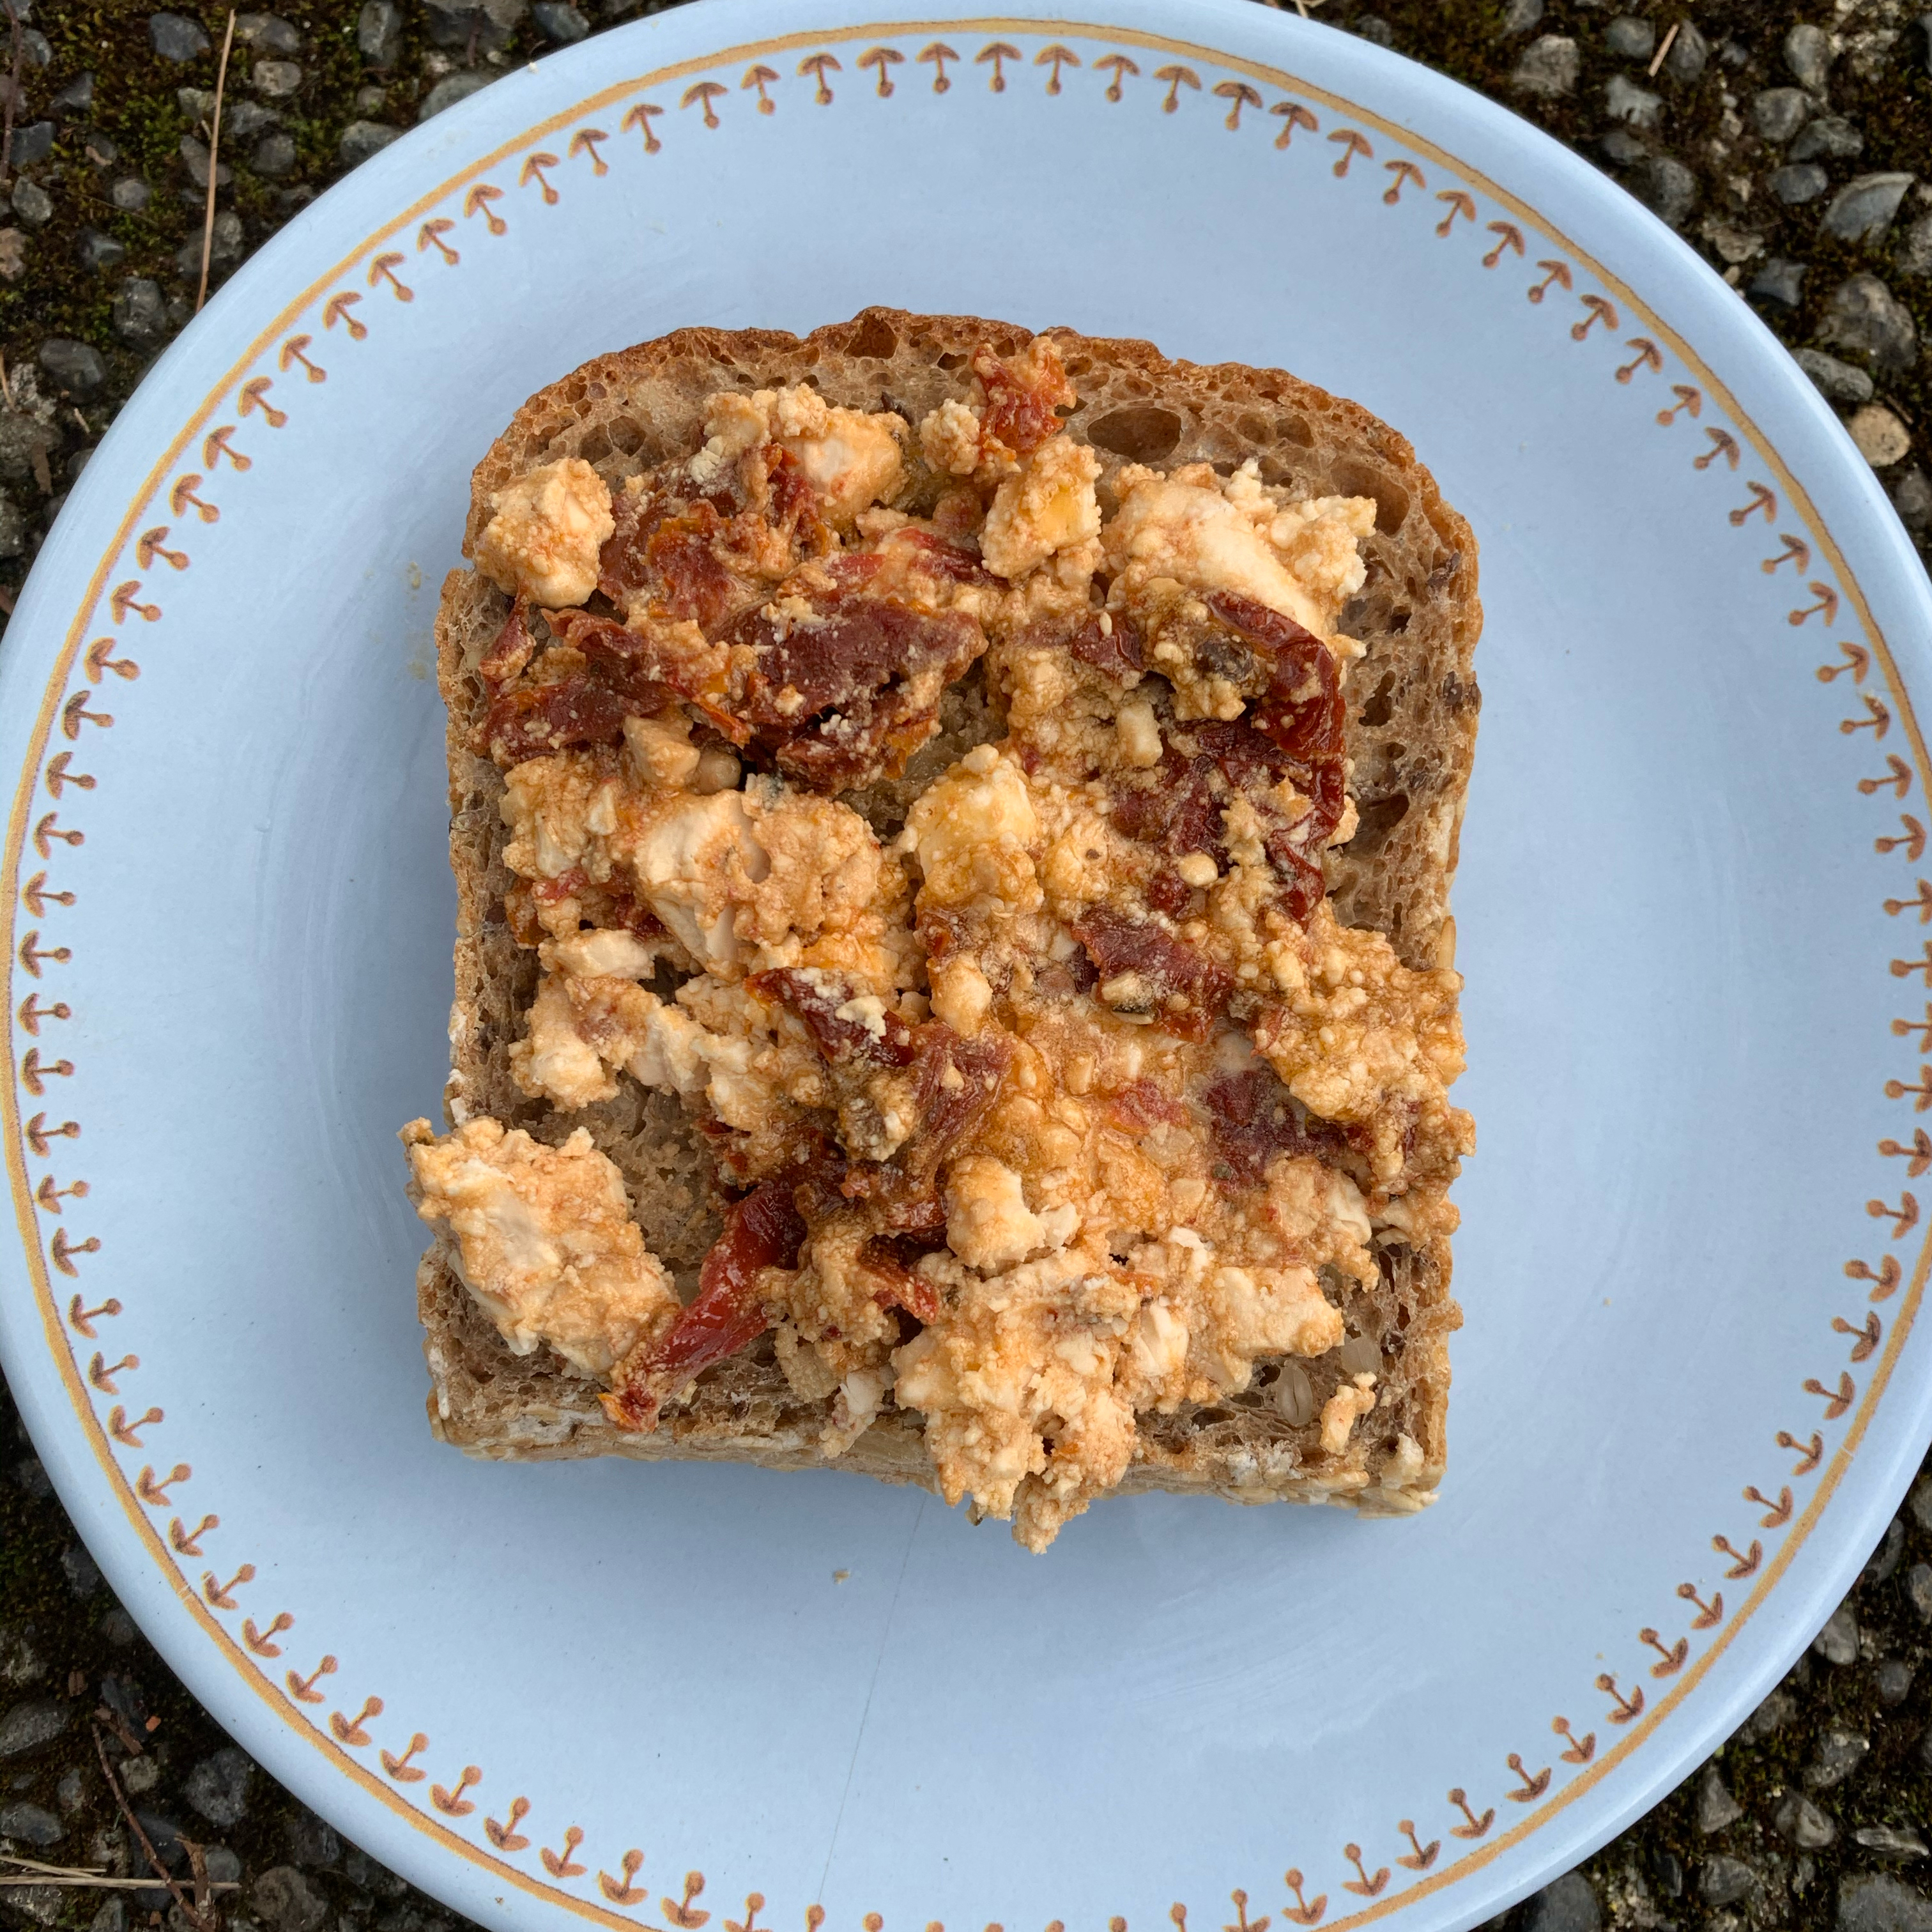 Baked Feta Spread with Sun-Dried Tomatoes barbara